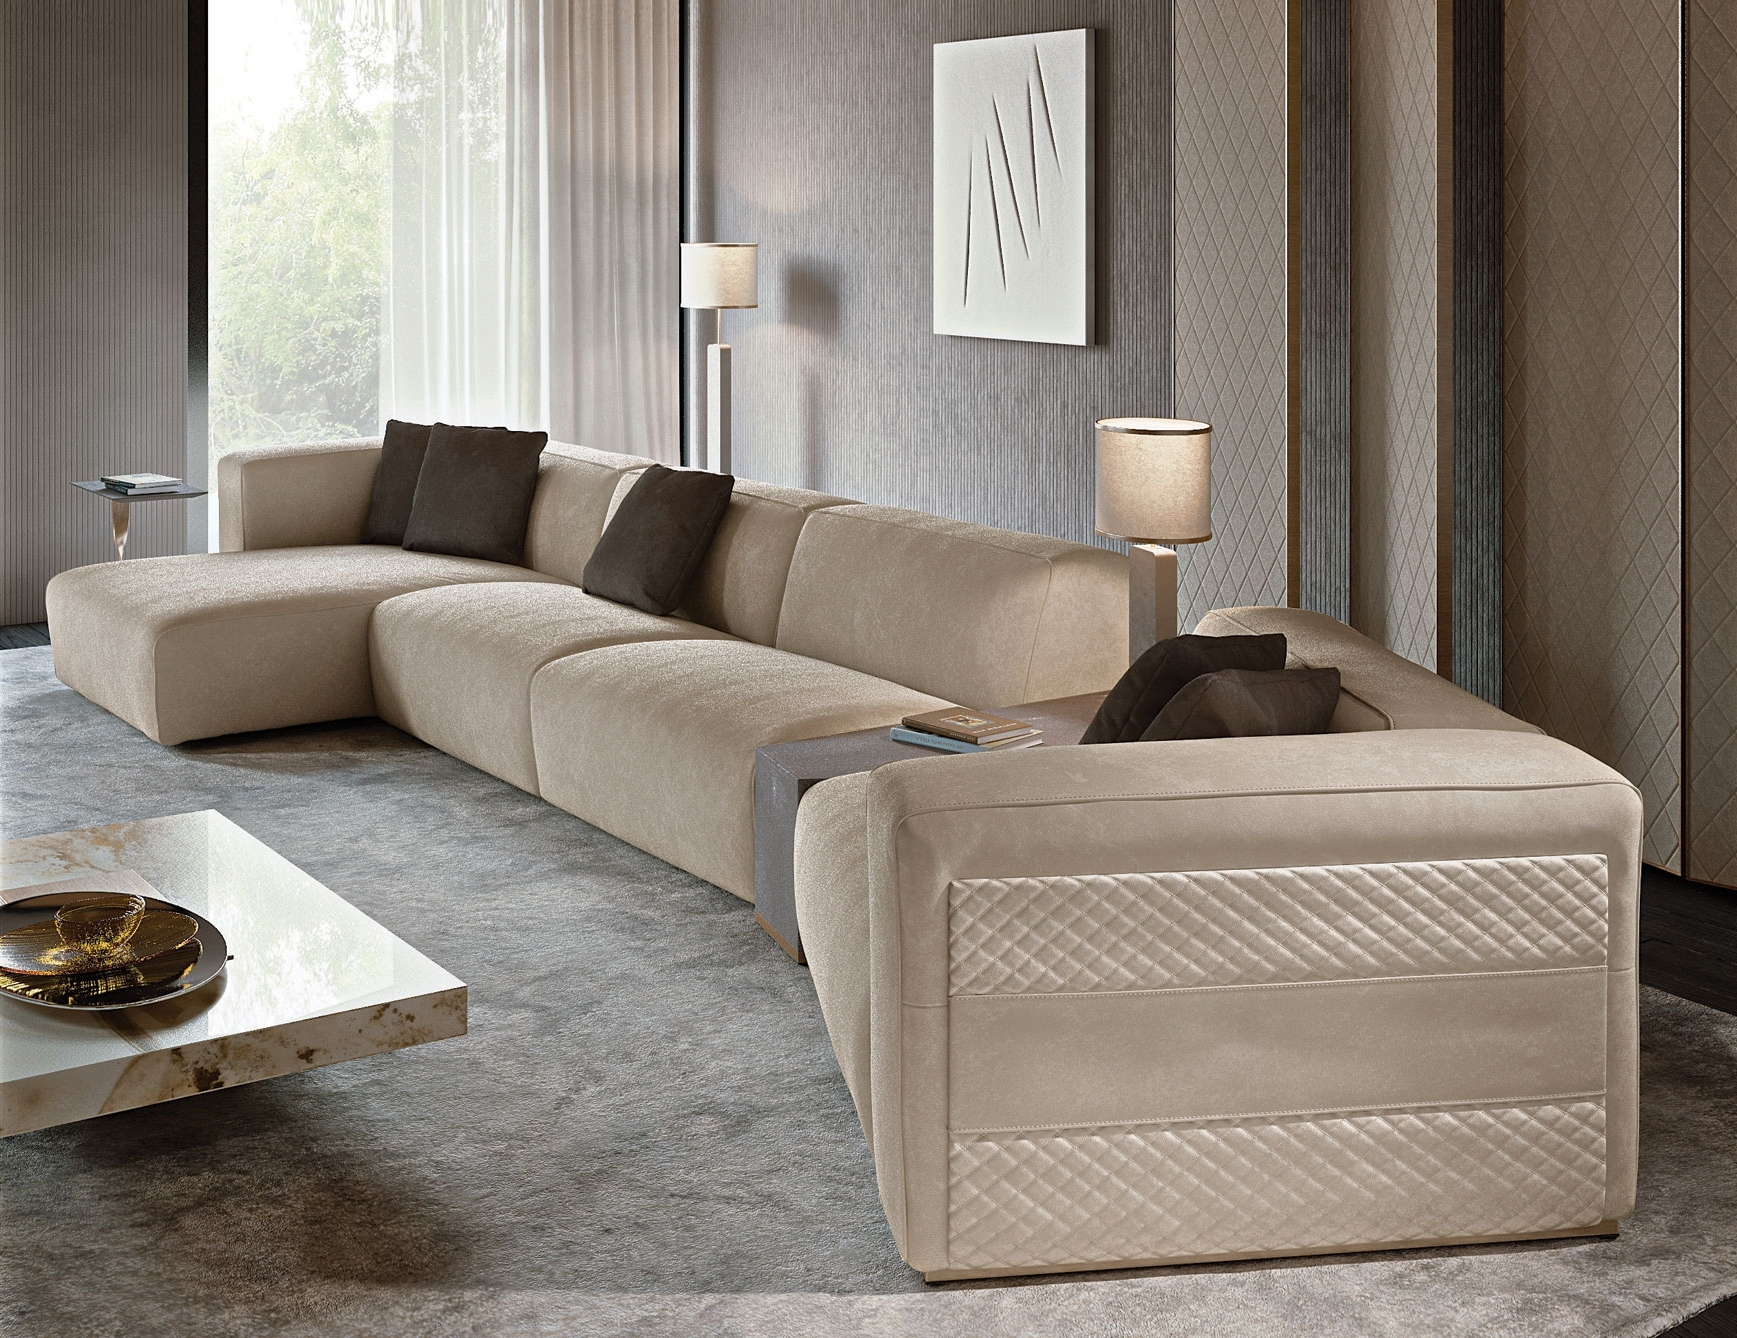 Most Recently Released Sofas And Chairs In Nella Vetrina Rugiano Freud Sectional Sofa In Suede (View 7 of 15)